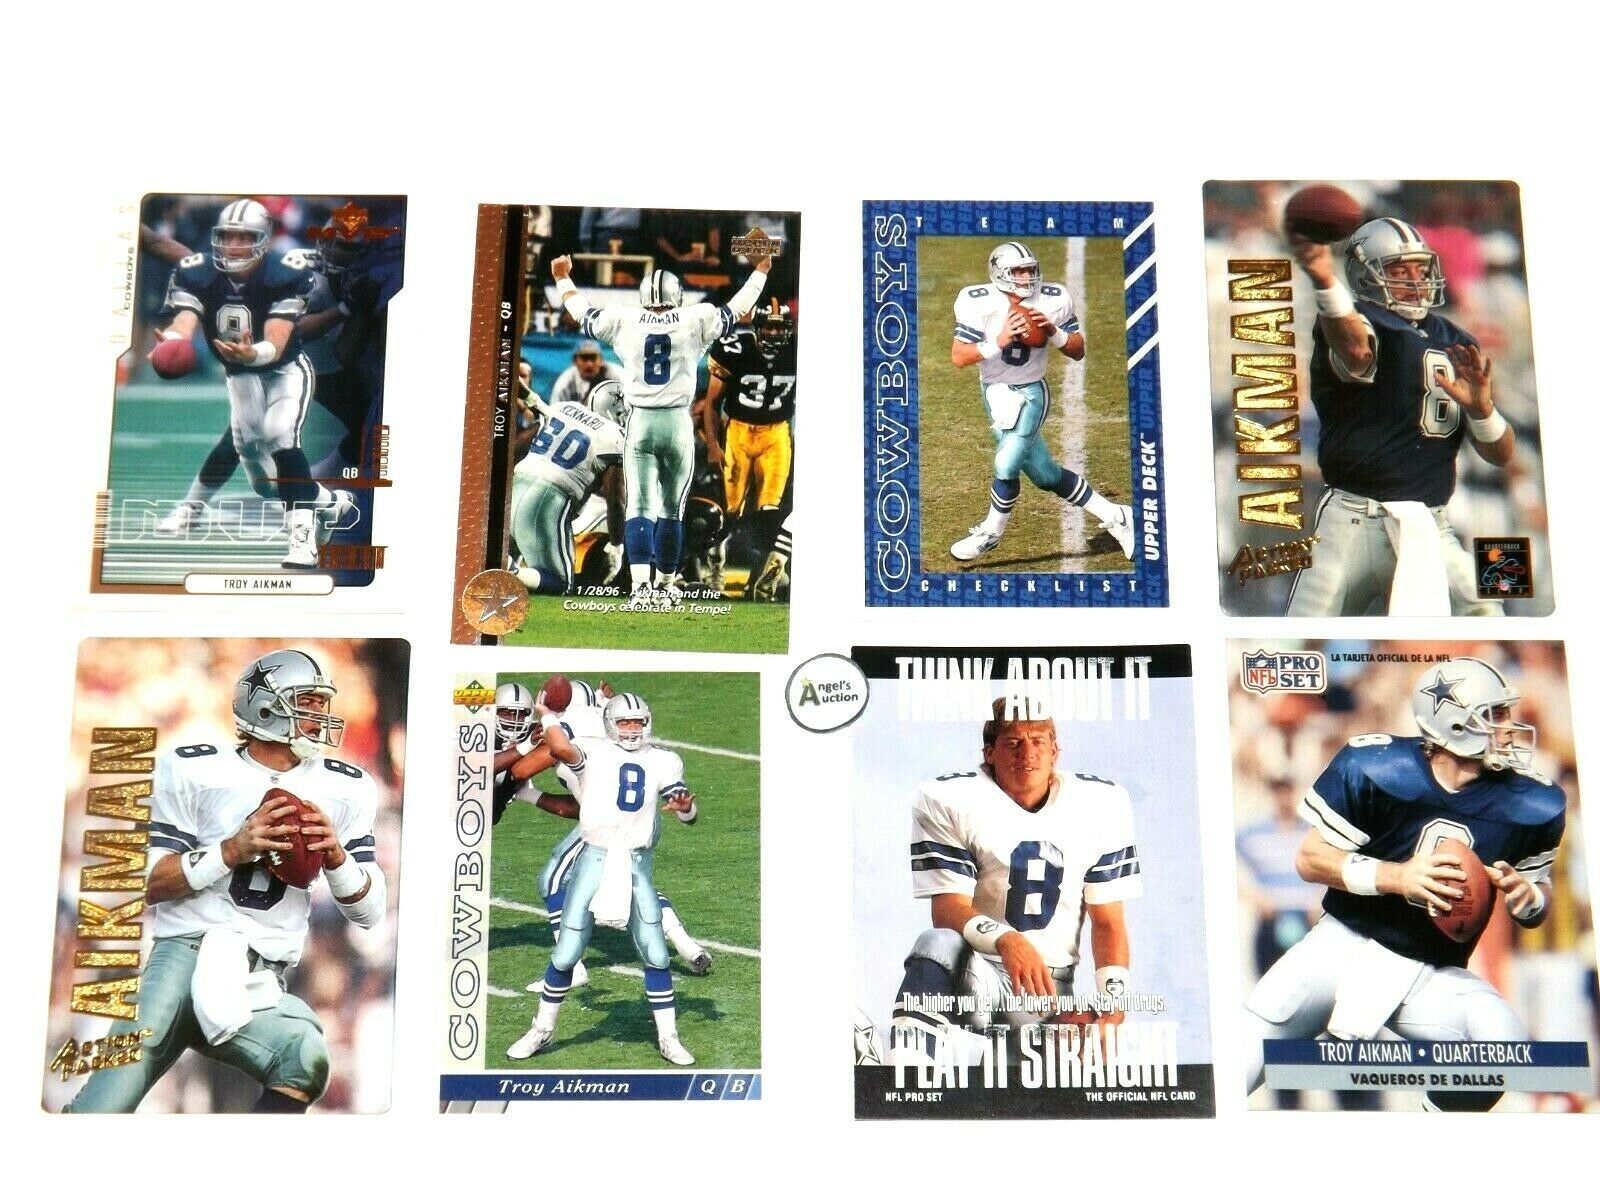 Troy Aikman #8 QB Dallas Cowboys Football Trading Cards AA-191702 Vintage Collec